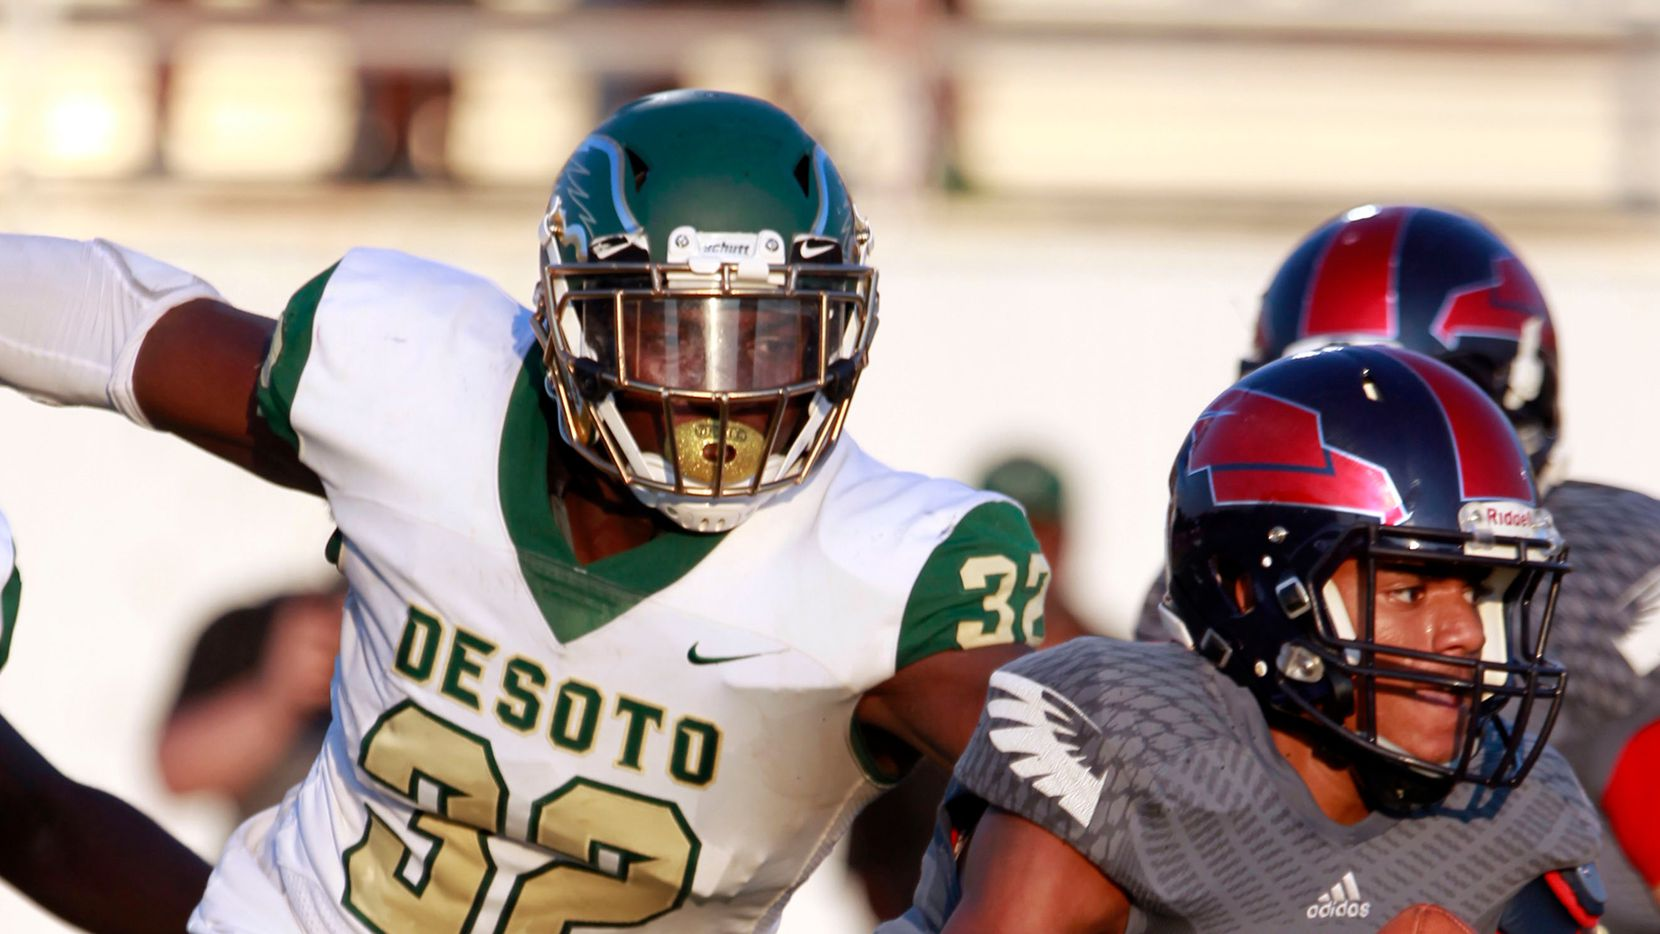 FILE - DeSoto defensive lineman Shemar Turner (32) chases down Bishop Dunne quarterback Simeon Evans (1) during a game at Sprague Stadium in Dallas on Saturday, Sept. 14, 2019.